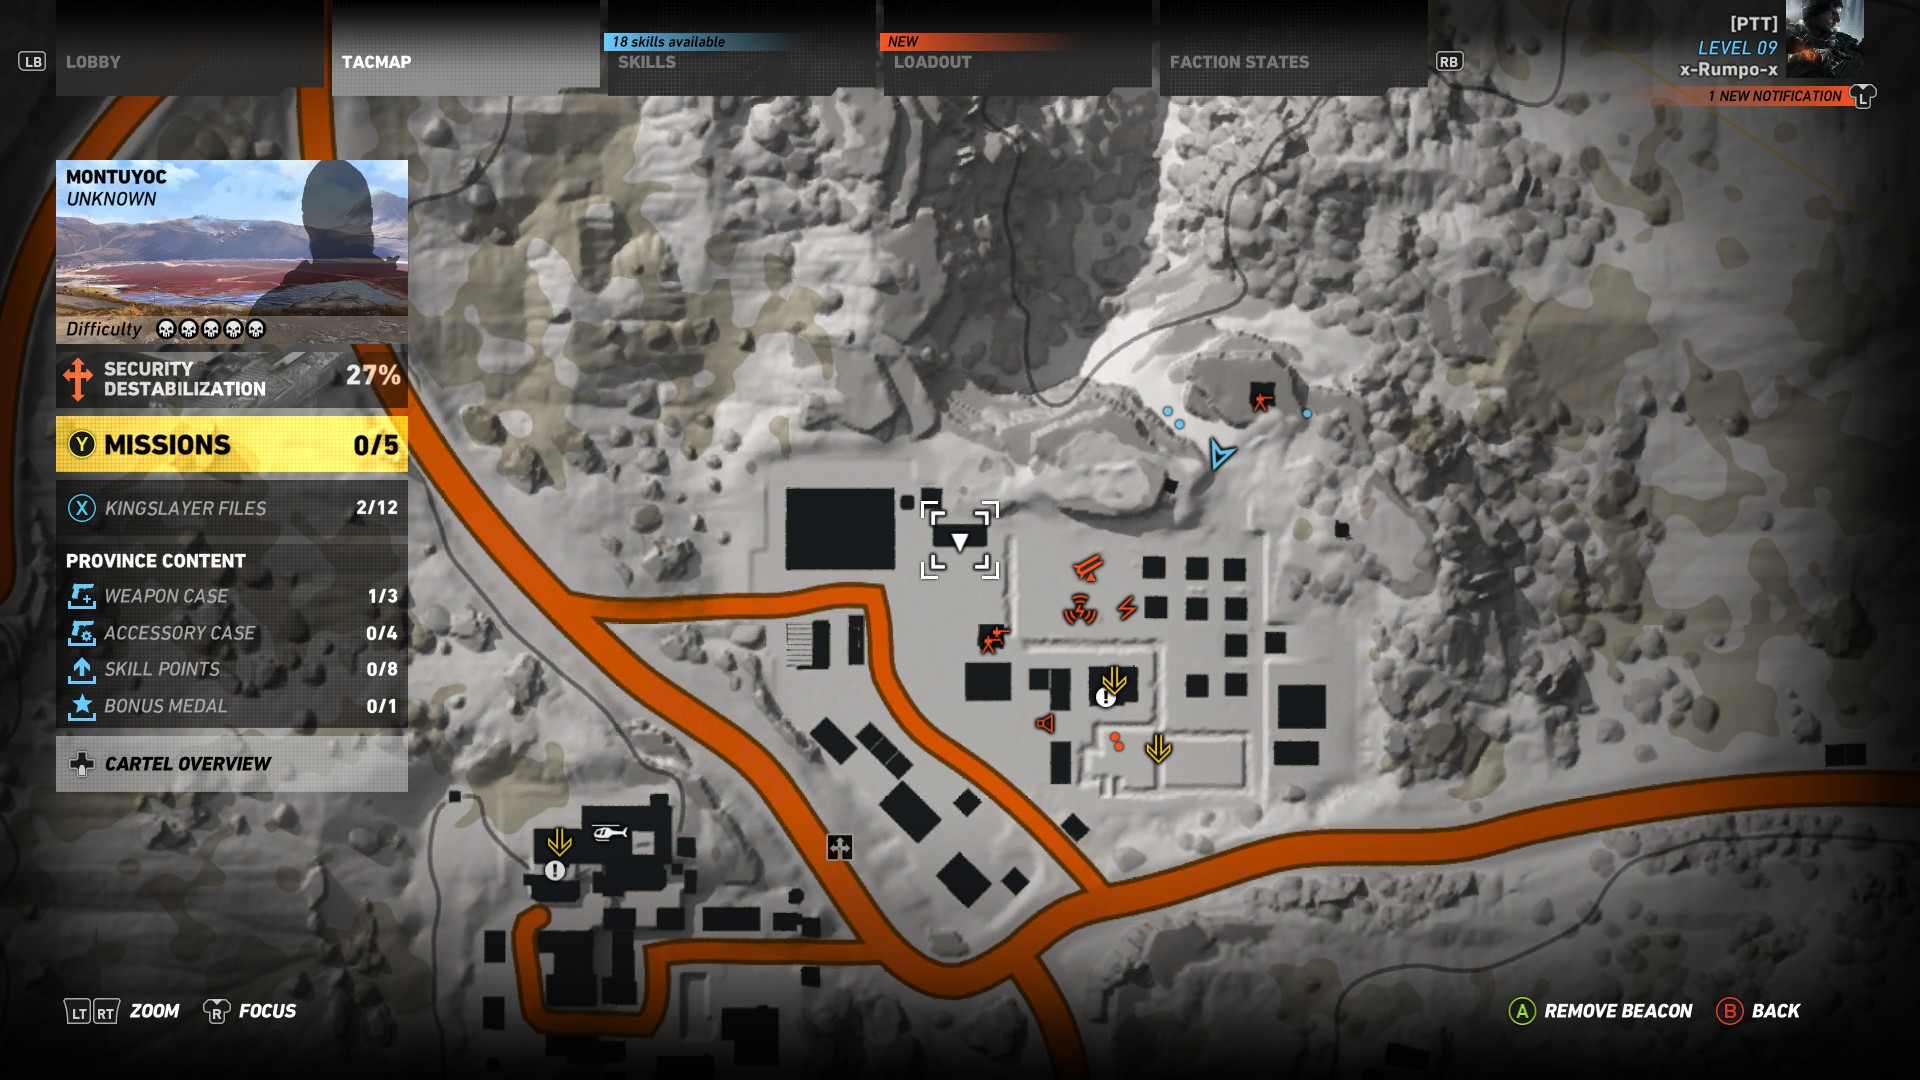 Second location - The best Sniper Rifle in Ghost Recon Wildlands